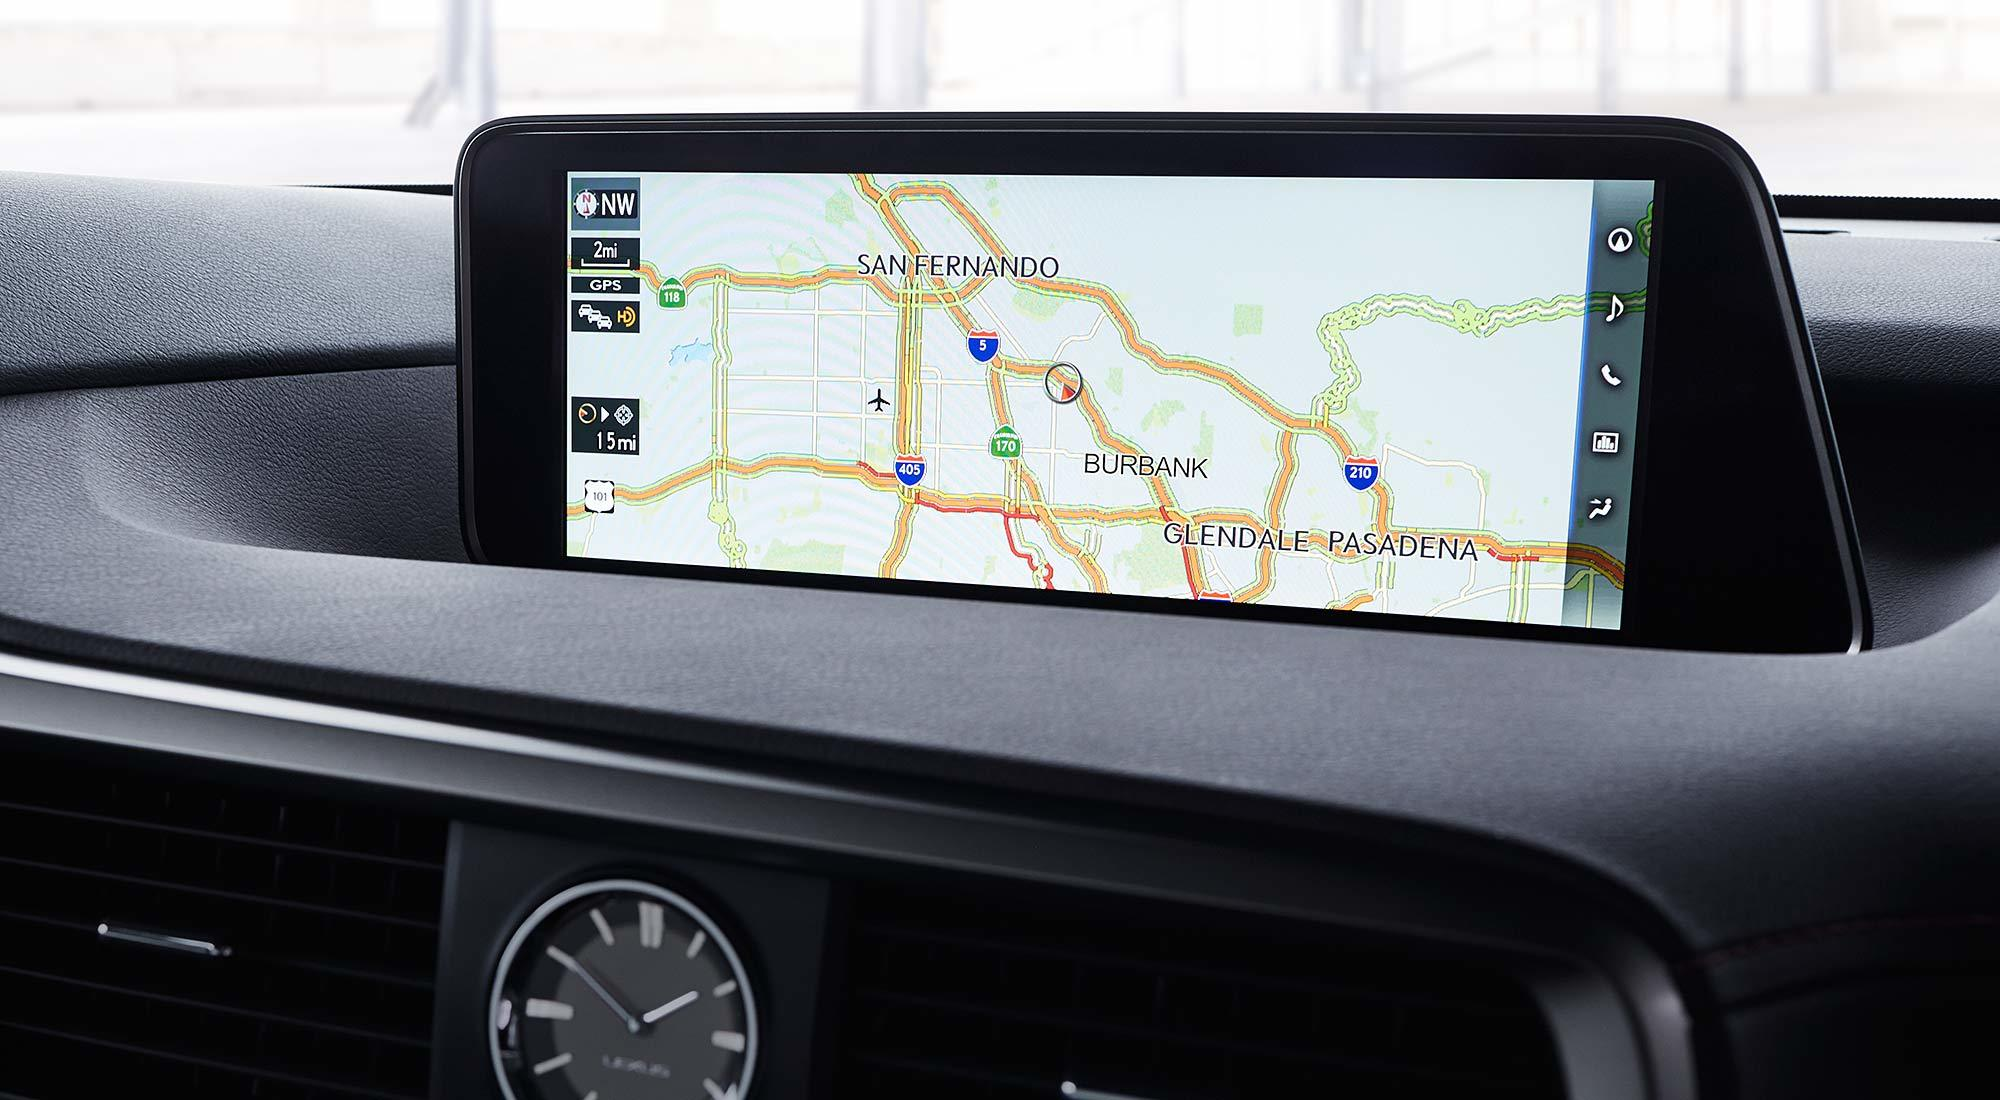 RX 12.3-inch Monitor with Full Screen Map